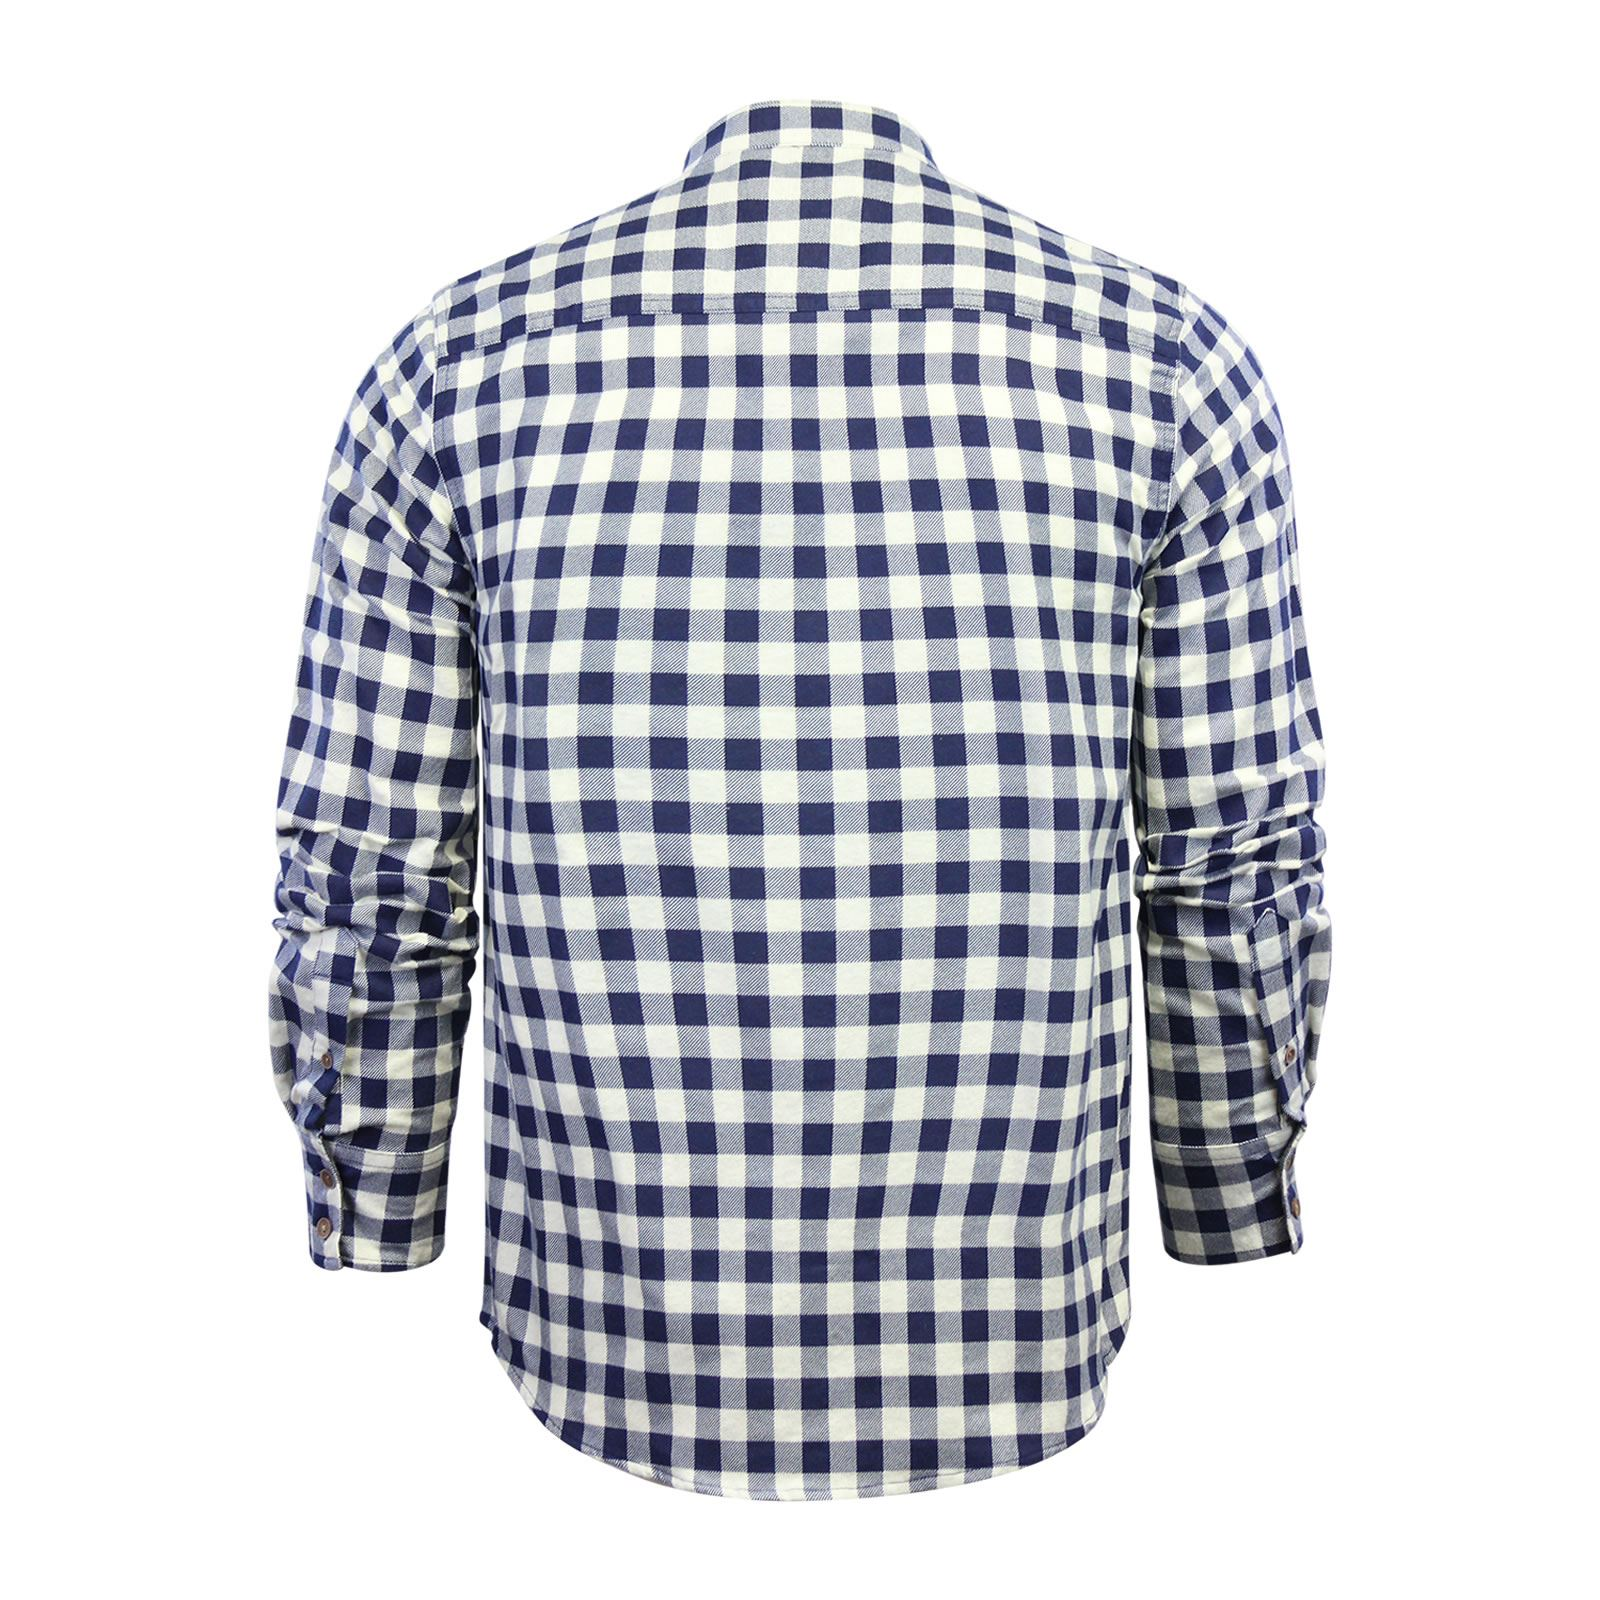 Mens-Check-Shirt-Brave-Soul-Flannel-Brushed-Cotton-Long-Sleeve-Casual-Top thumbnail 117